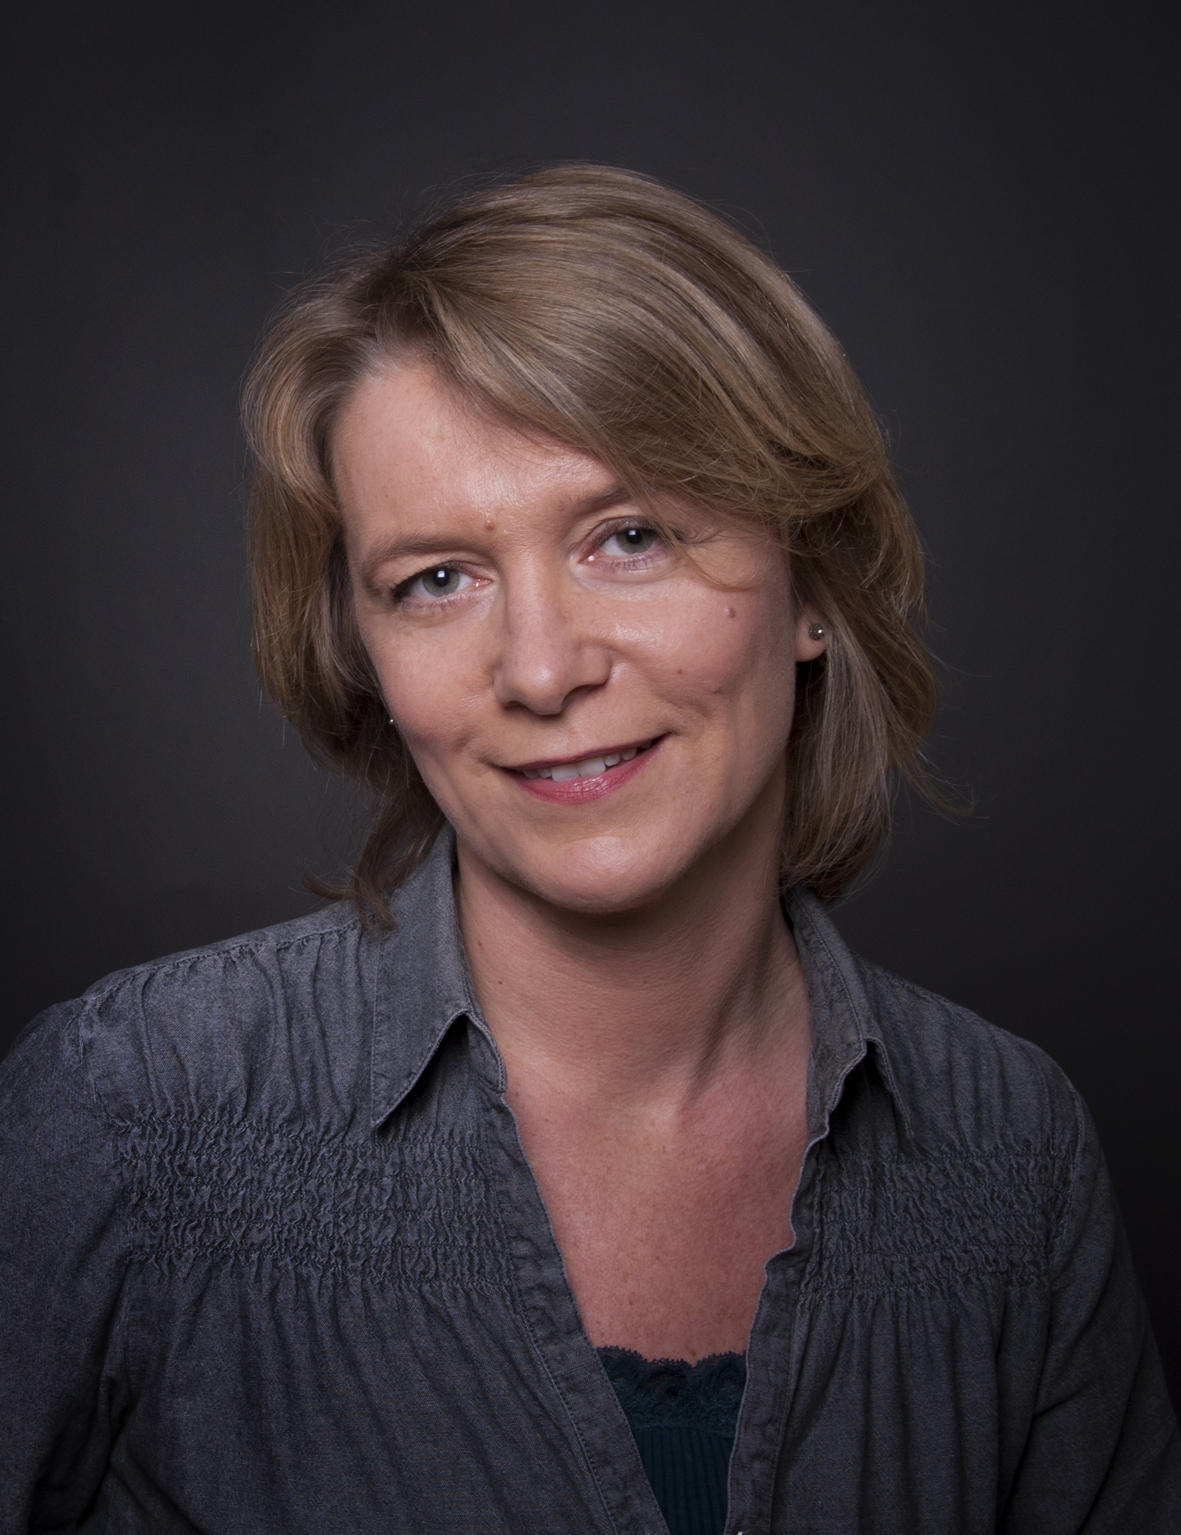 Image of Marit Råbu